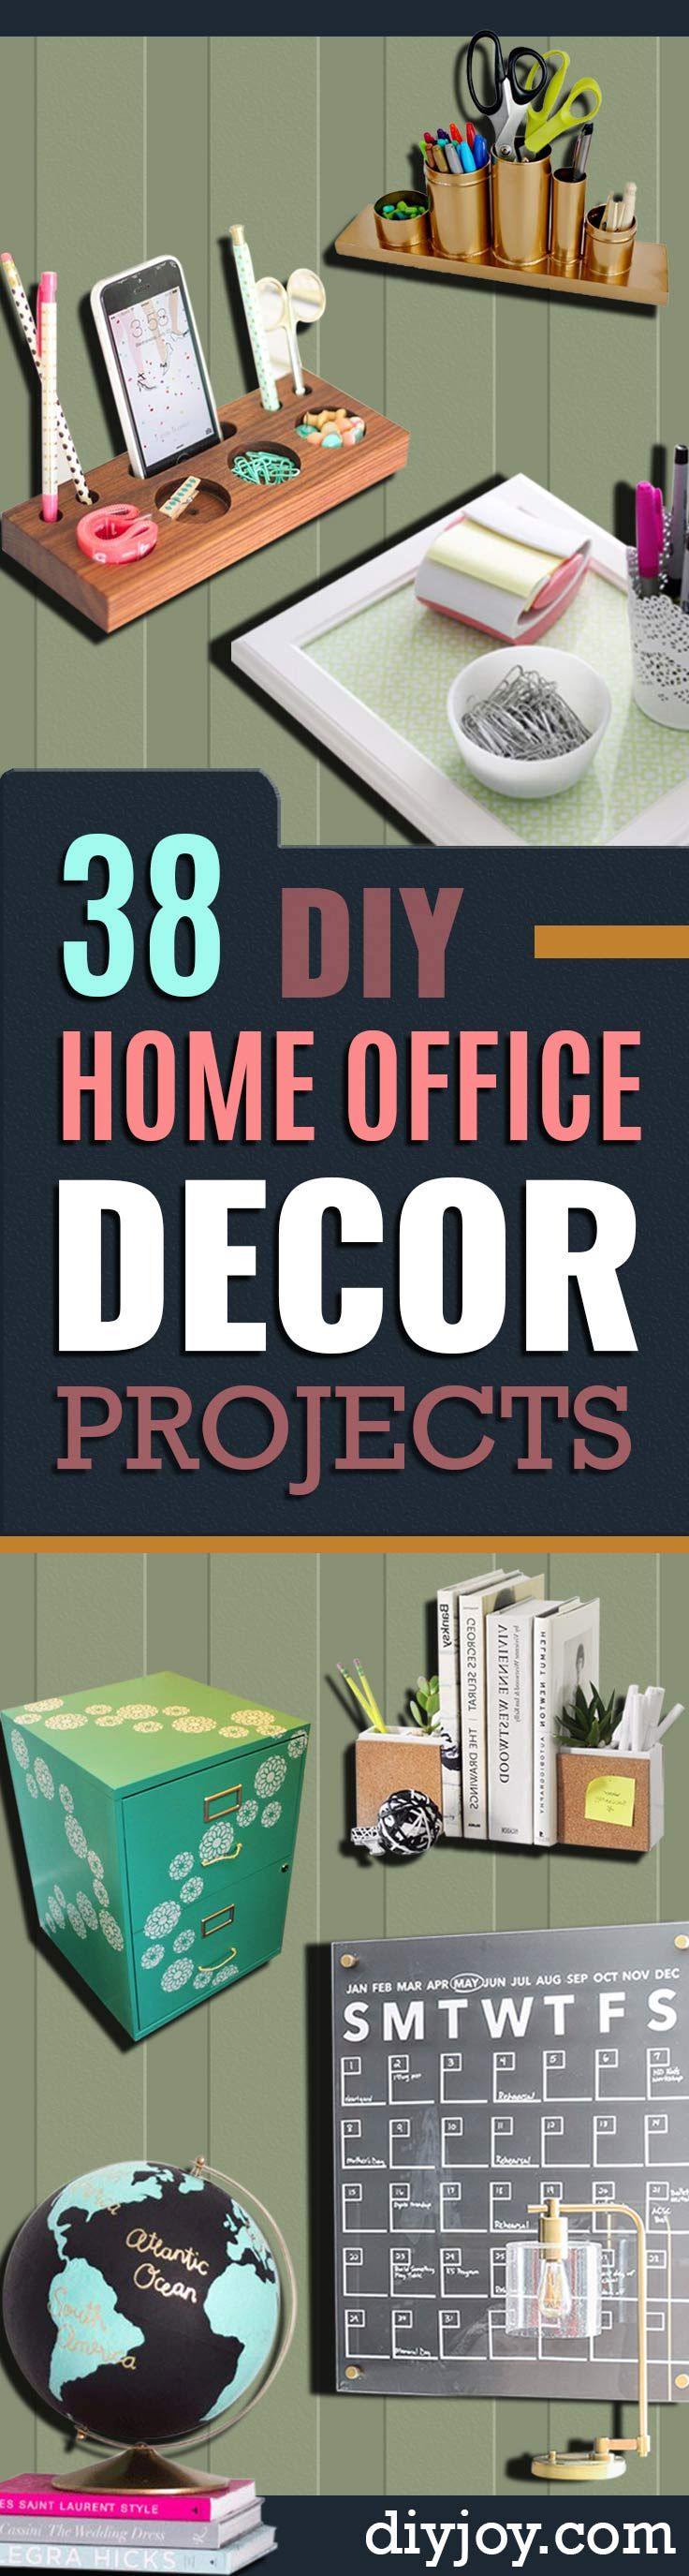 17 Best Images About Interior Designs On Pinterest Small Rooms Mid Century Modern And Diy Chair